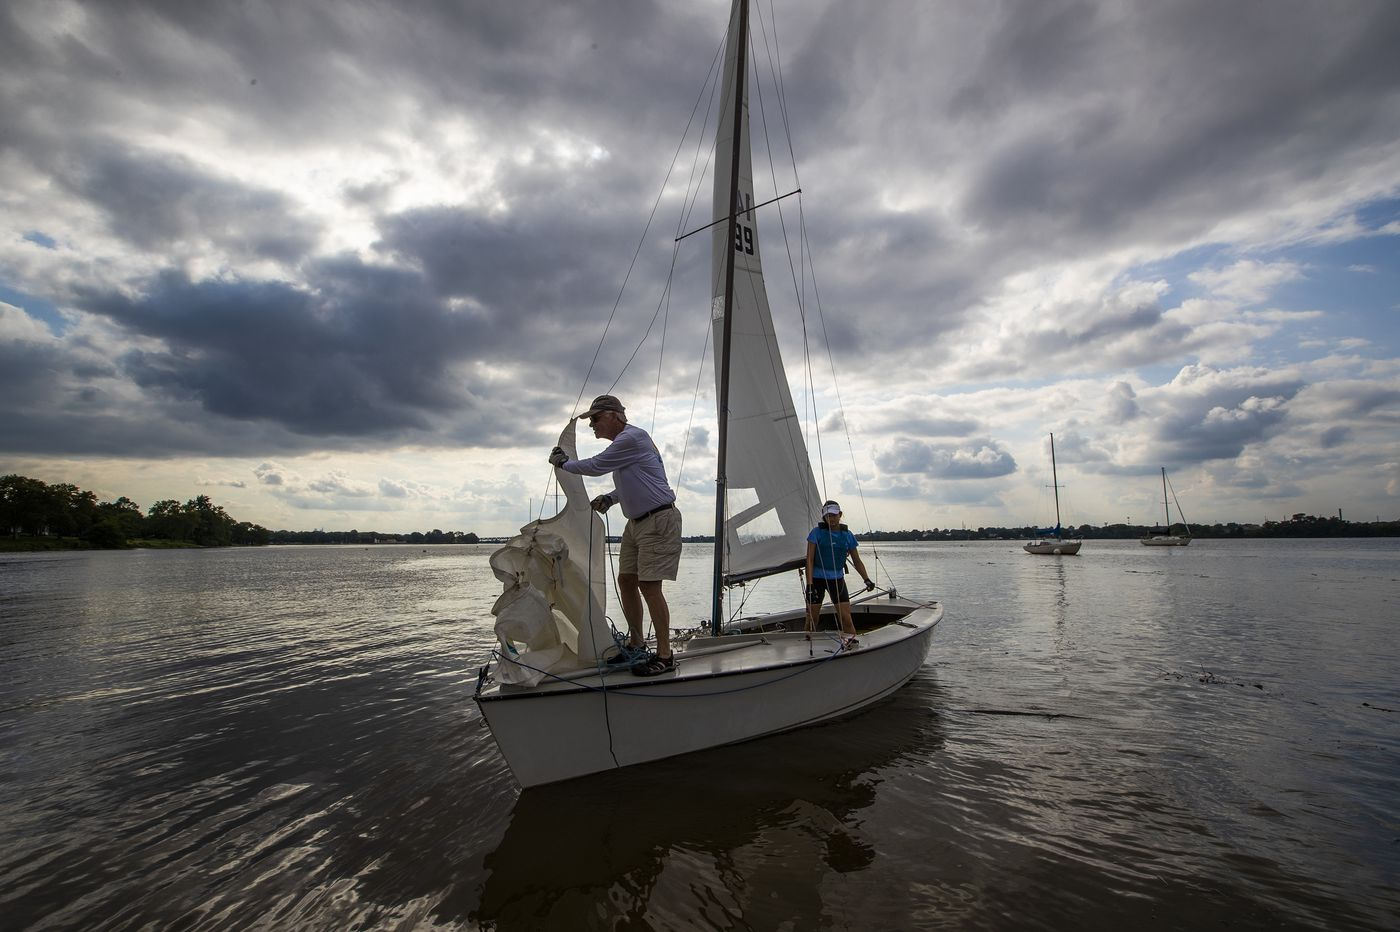 COVID-19 makes boat sales soar as families seek social distancing on the water